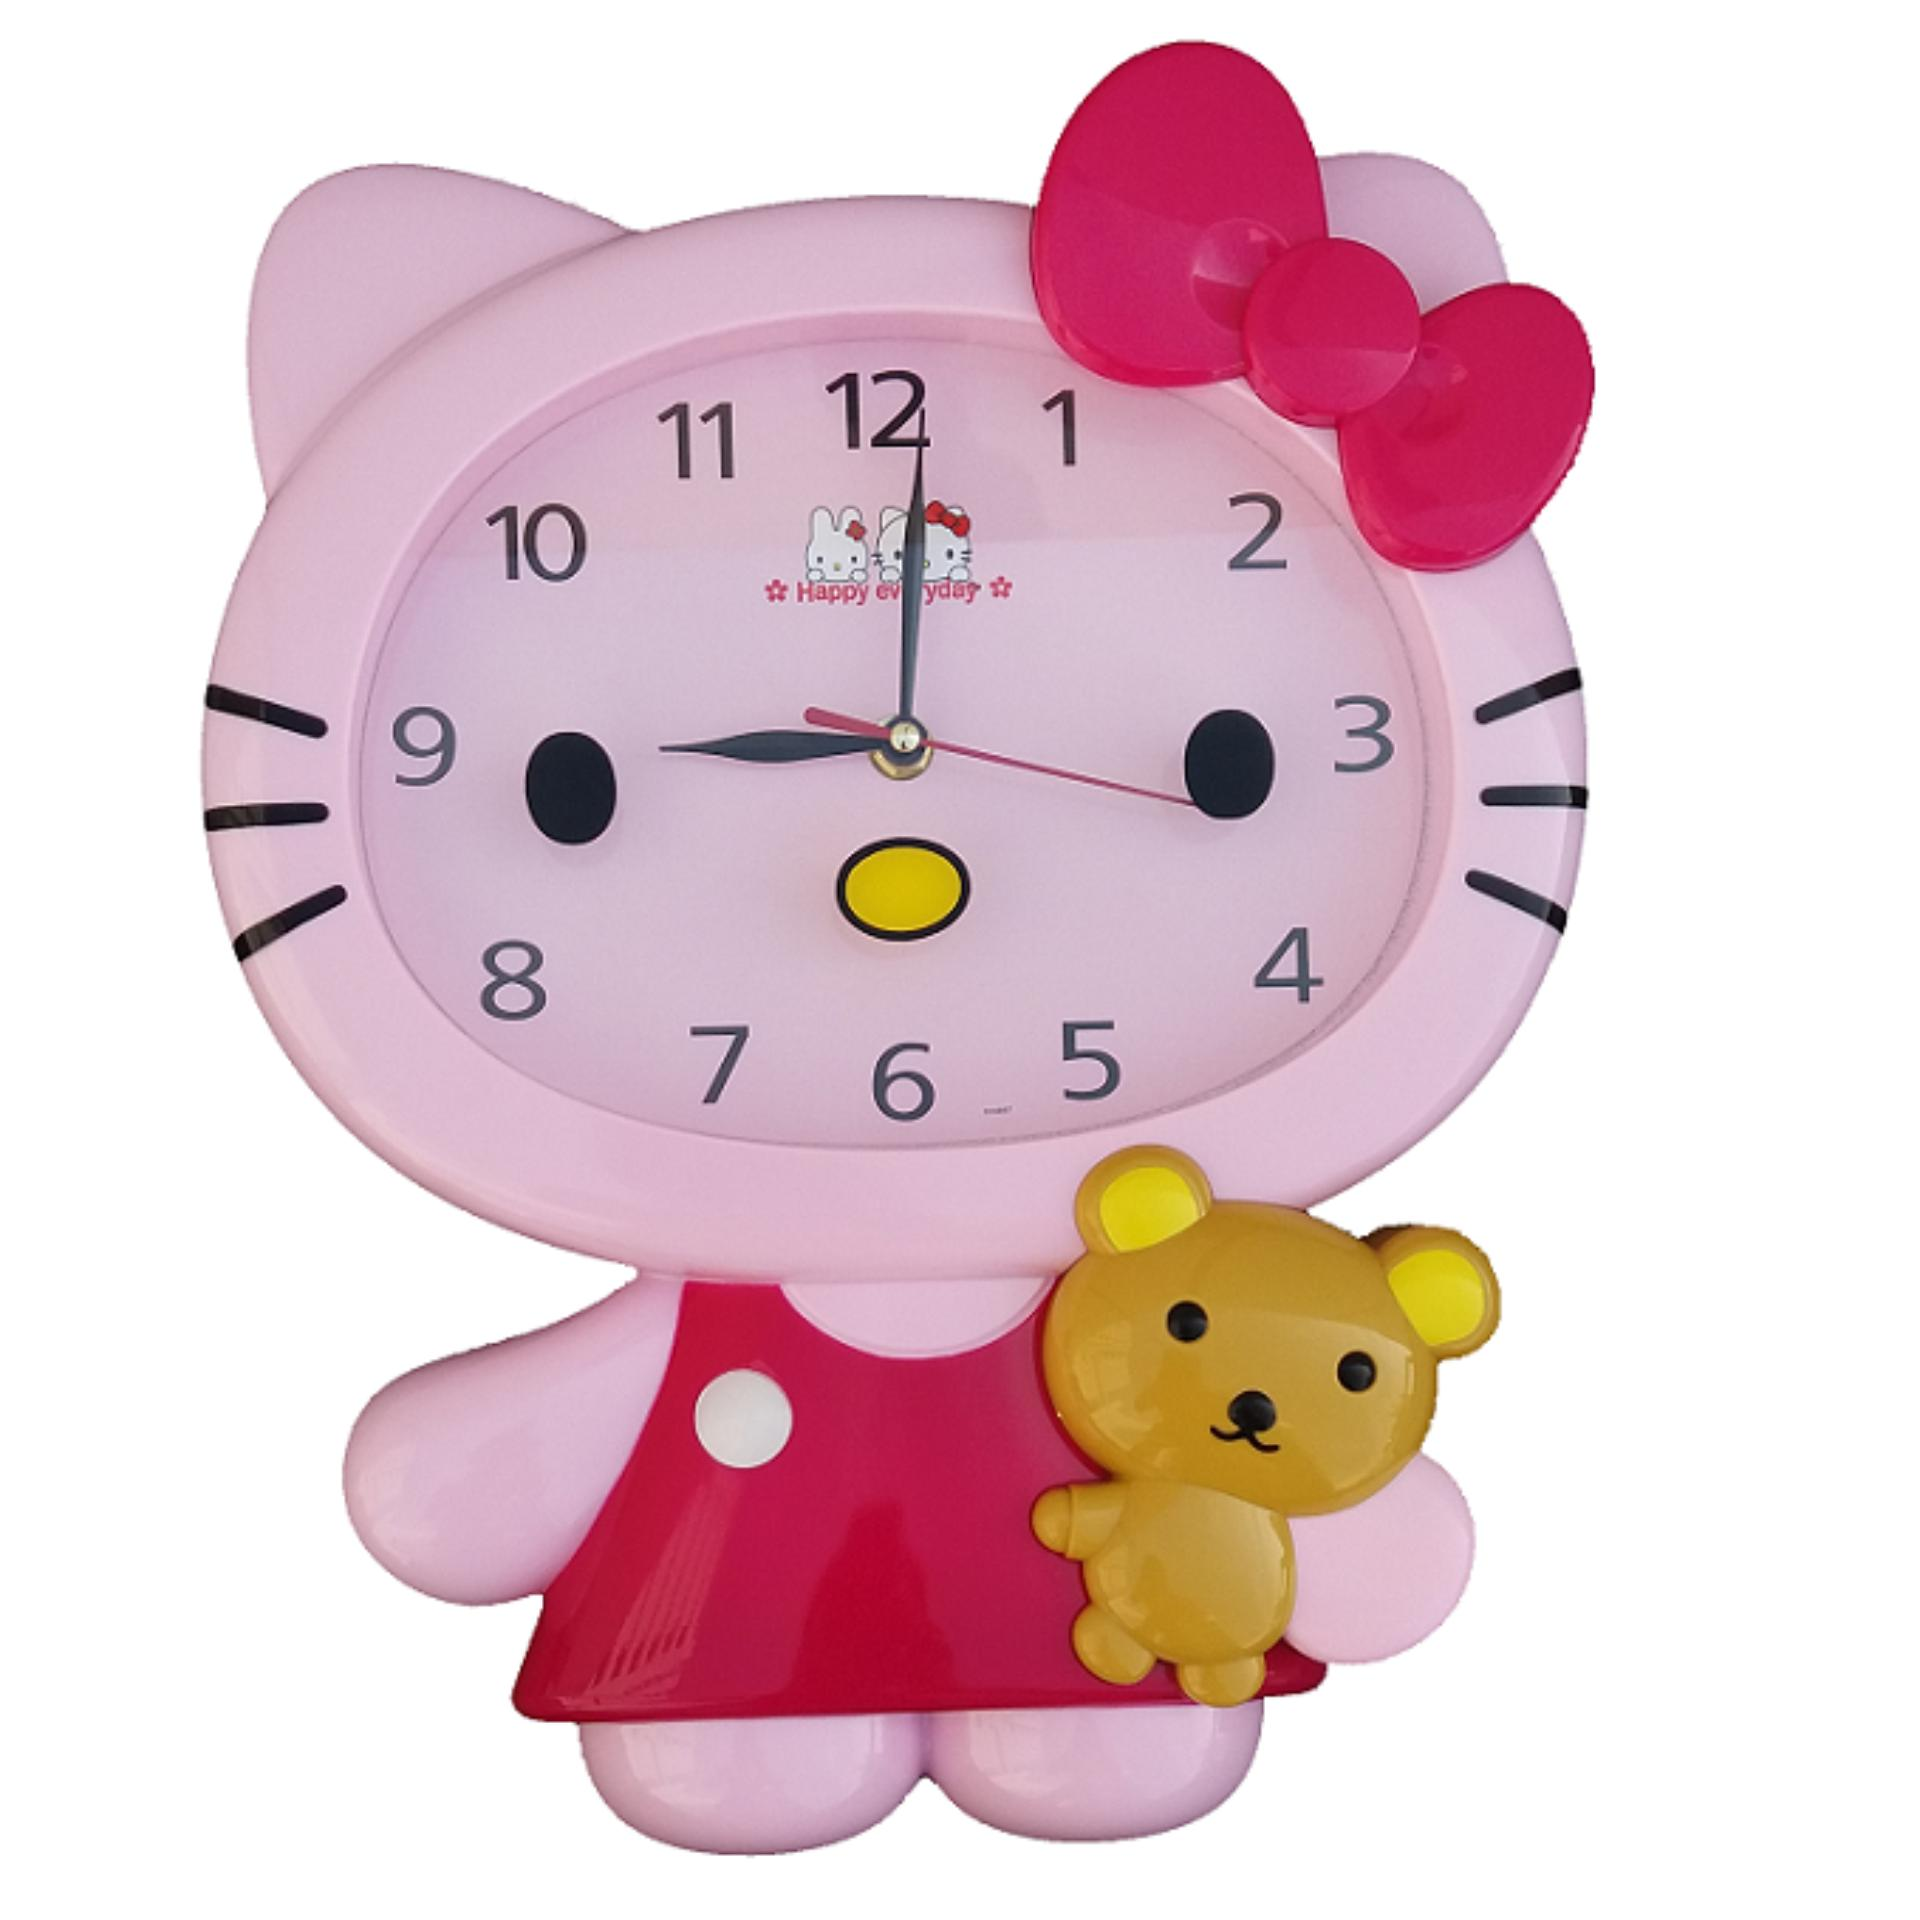 Hello Kitty karakter Jam Dinding HK-5157 9bb403a05f